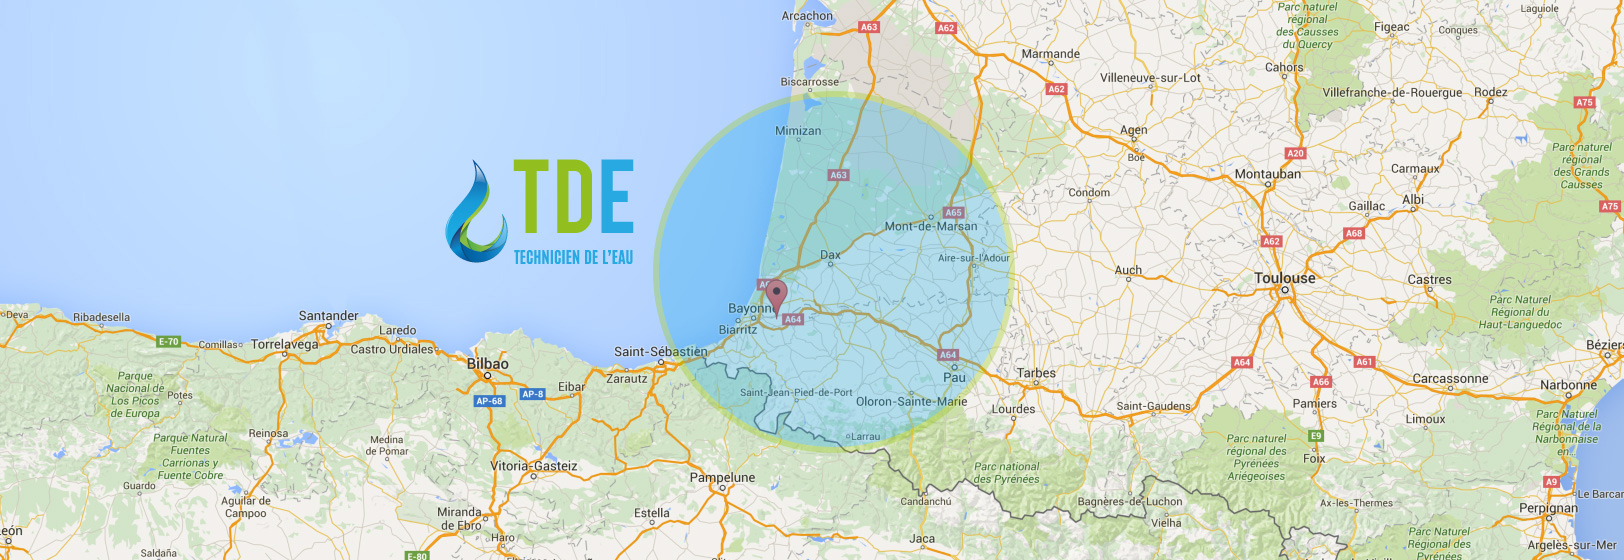 Contact devis technicien de l'eau TDE Pays Basque Landes 40 64